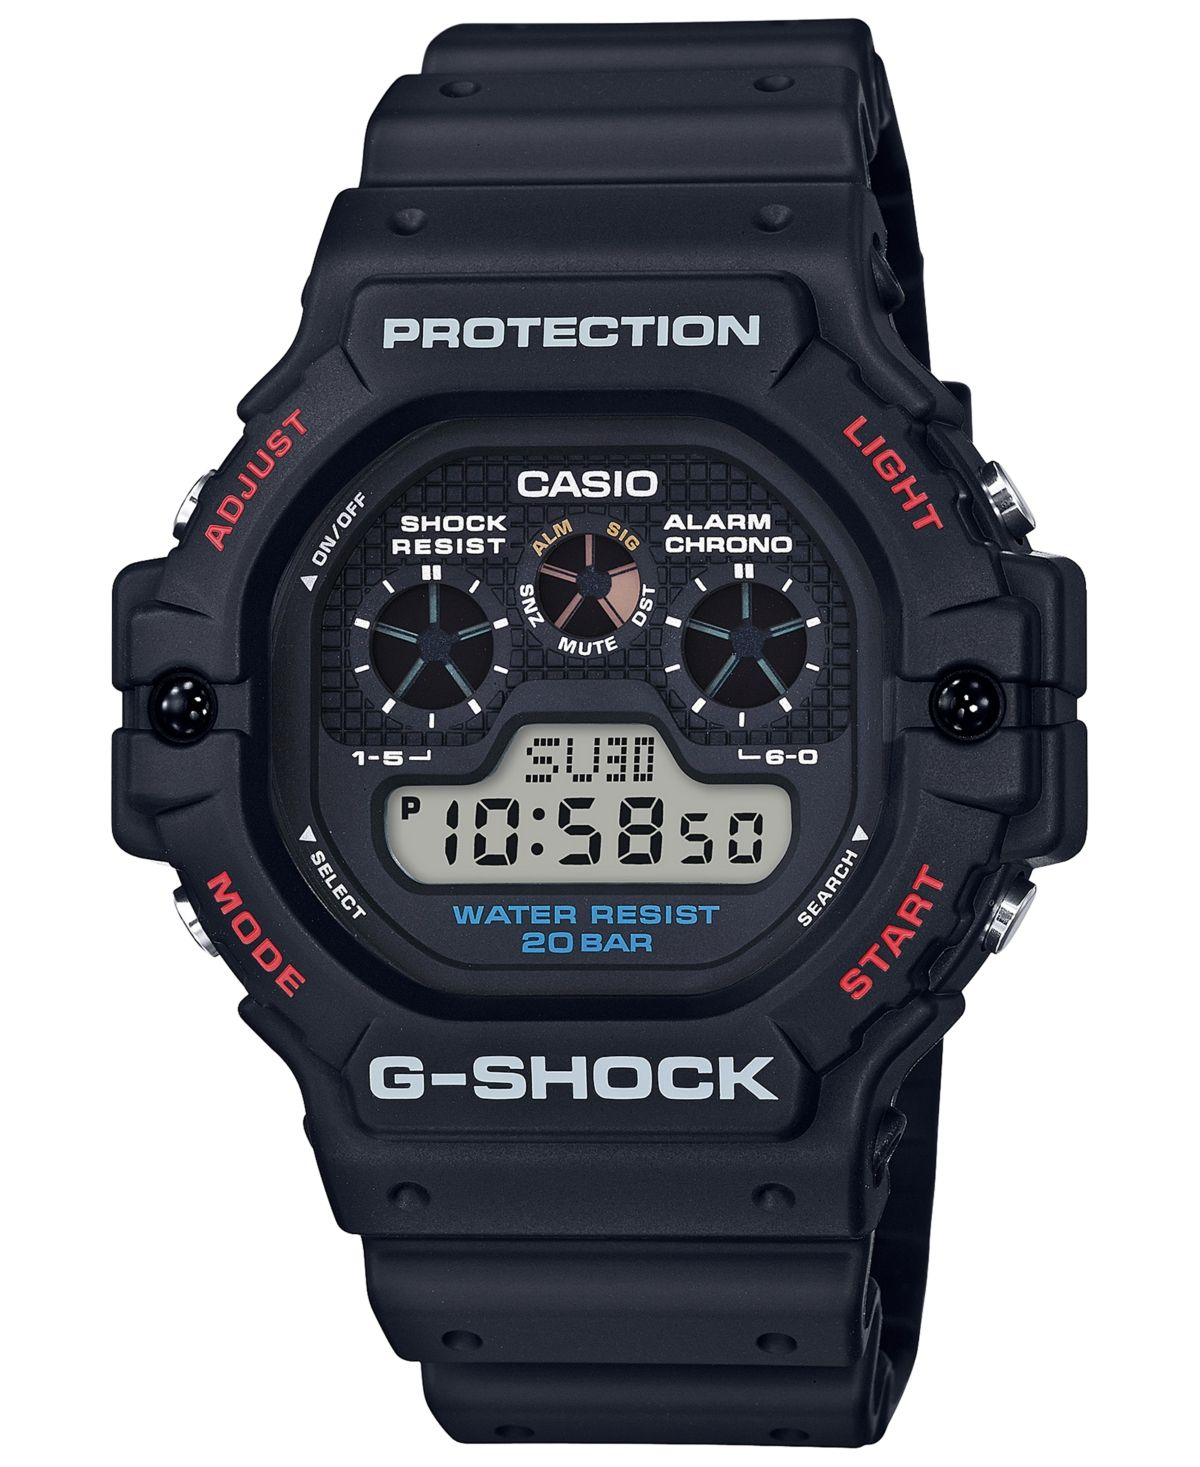 G-Shock Men's Digital Black Resin Strap Watch 51.4mm & Reviews - Watches - Jewelry & Watches - Macy's #sportswatches